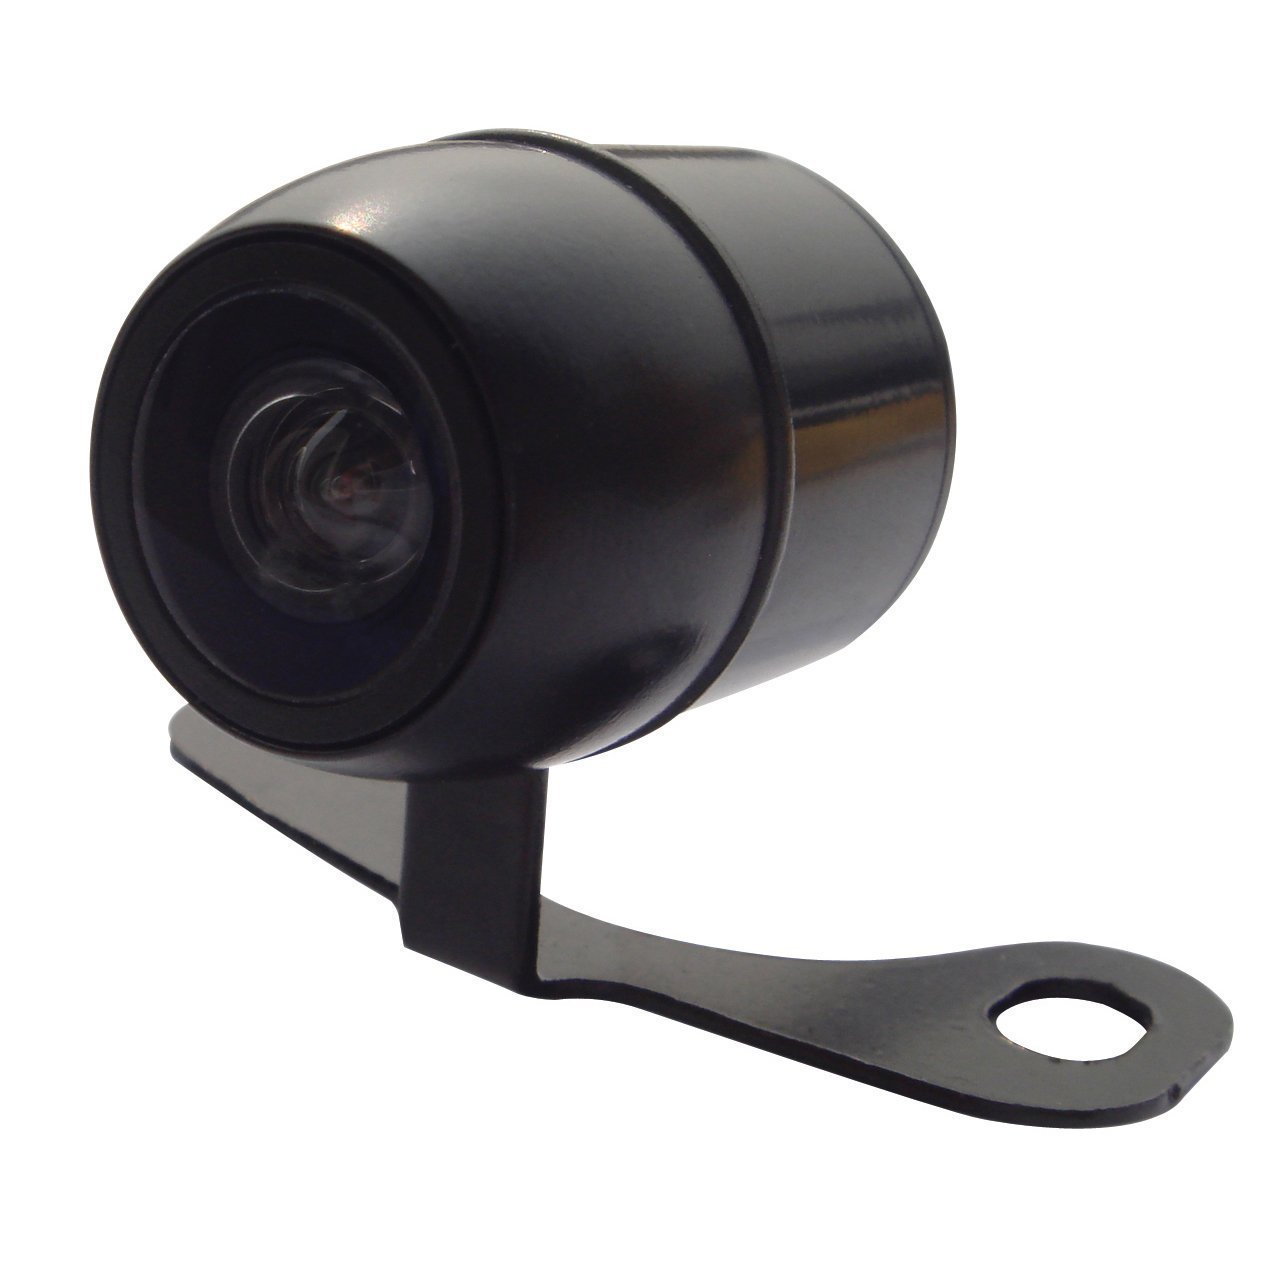 Install Bay Safety TE-SBC Small Waterproof Bullet Camera w/ Deafeatable Parking Assist Lines